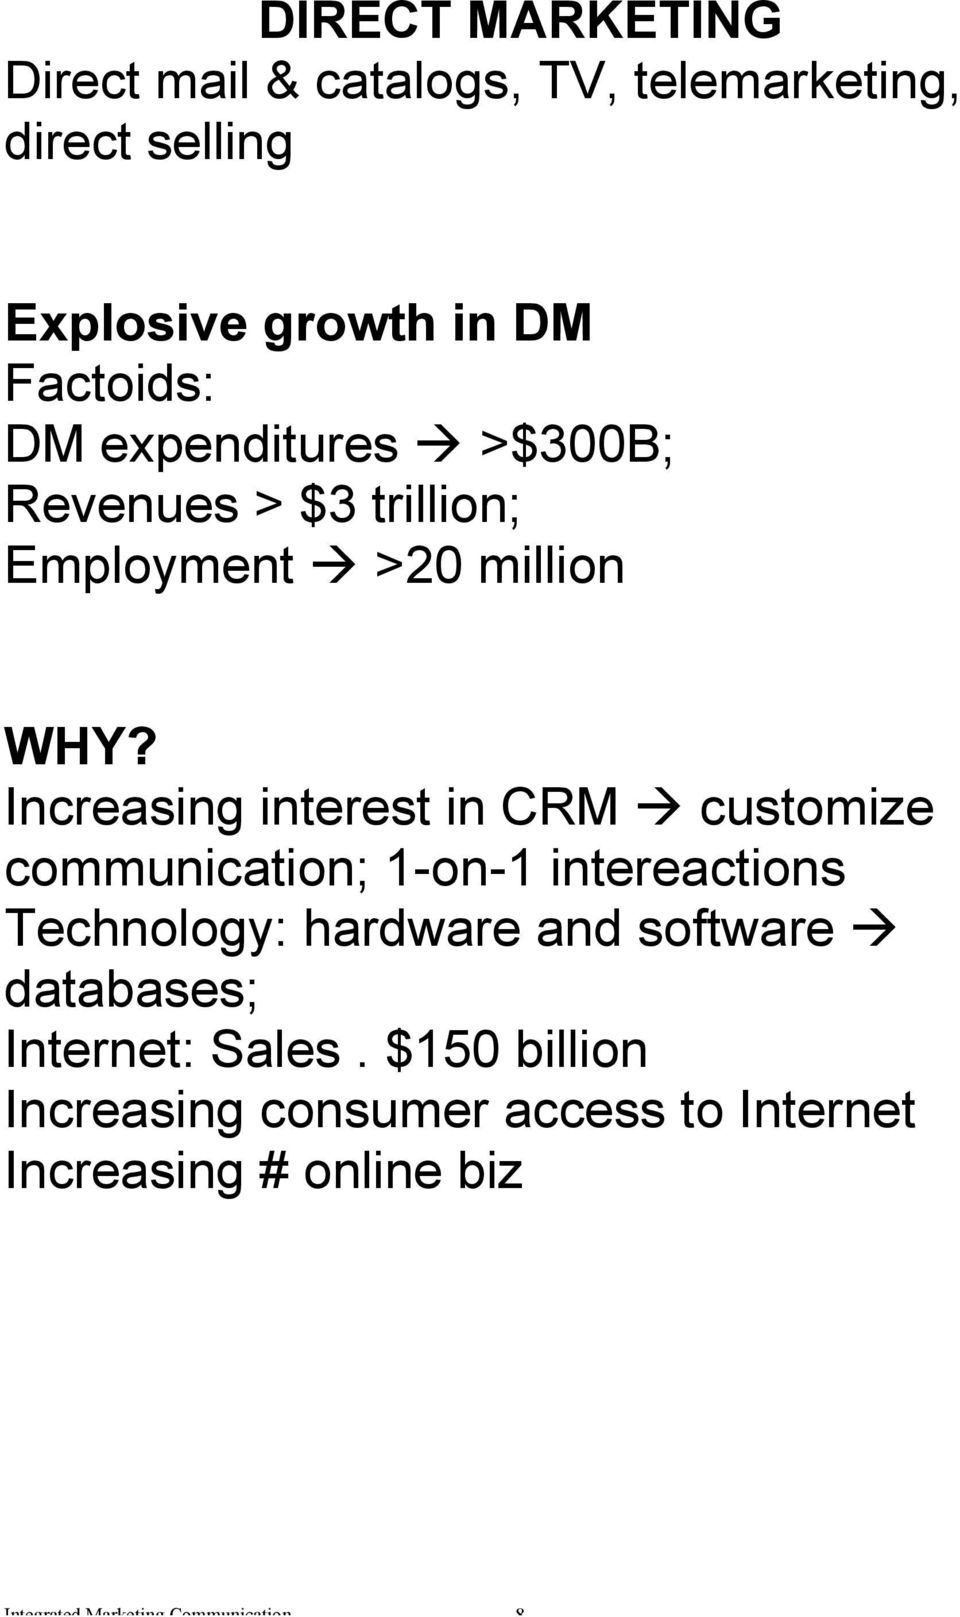 Increasing interest in CRM customize communication; 1-on-1 intereactions Technology: hardware and software